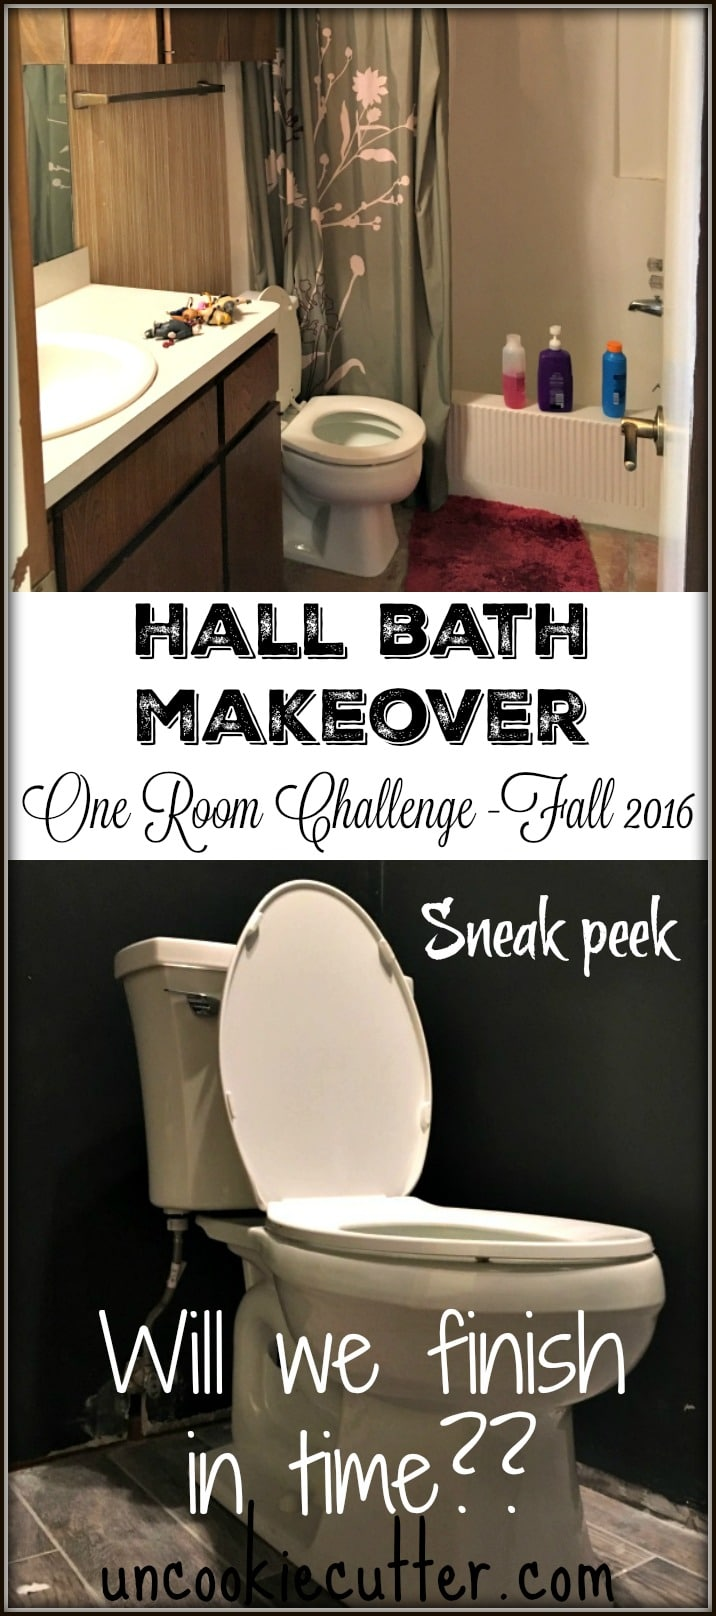 Hall Bath Makeover - One Room Challenge - Fall 2016 - Week 5 - UncookieCutter.com